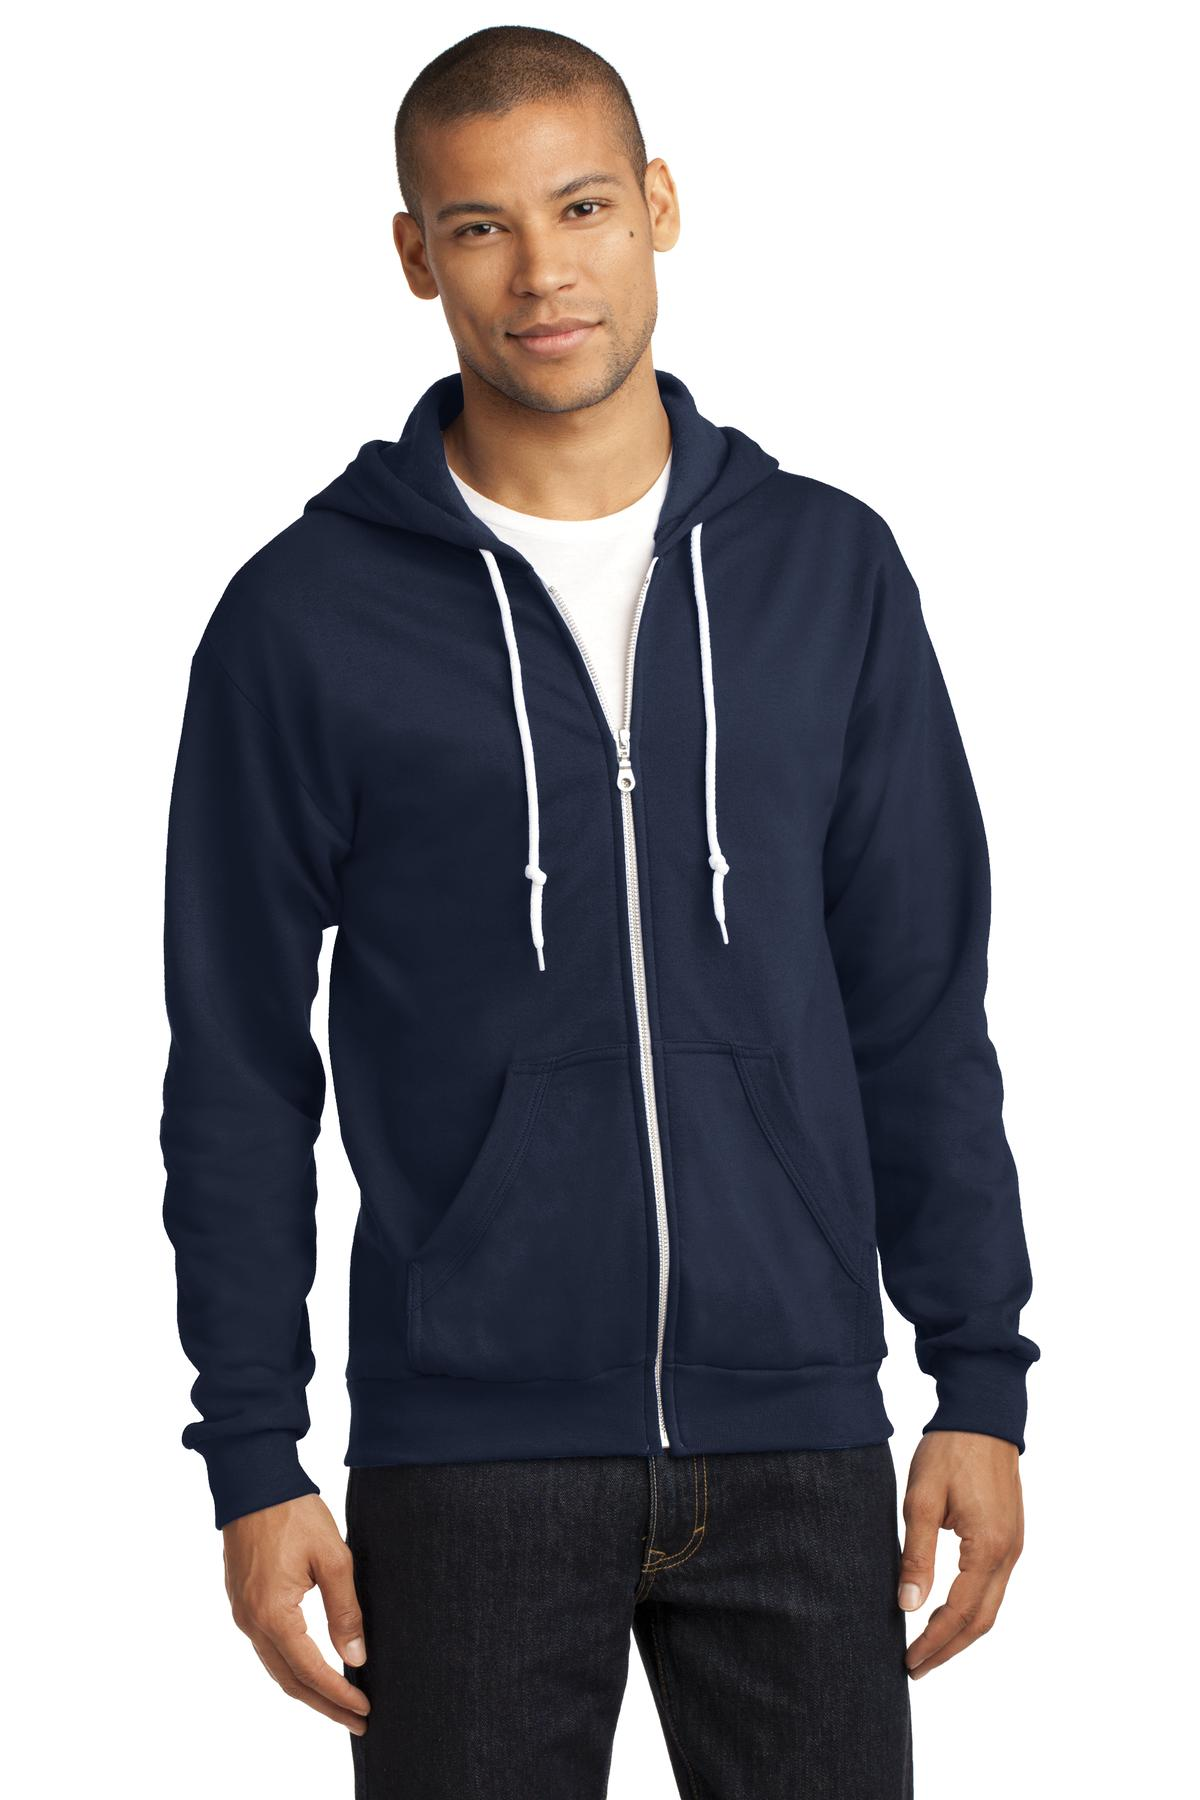 Sweatshirts-Fleece-Hooded-8